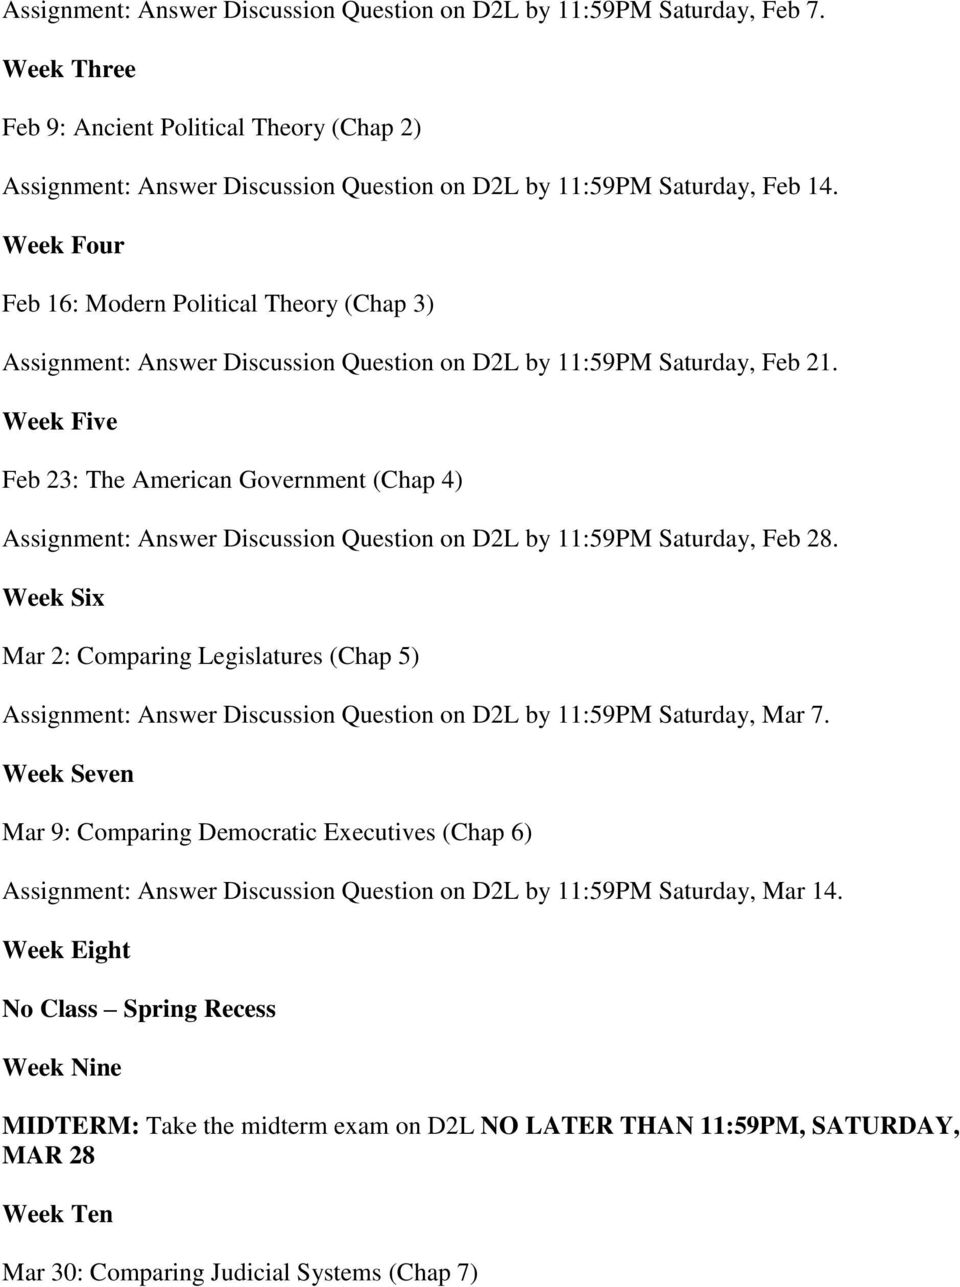 Week Five Feb 23: The American Government (Chap 4) Assignment: Answer Discussion Question on D2L by 11:59PM Saturday, Feb 28.